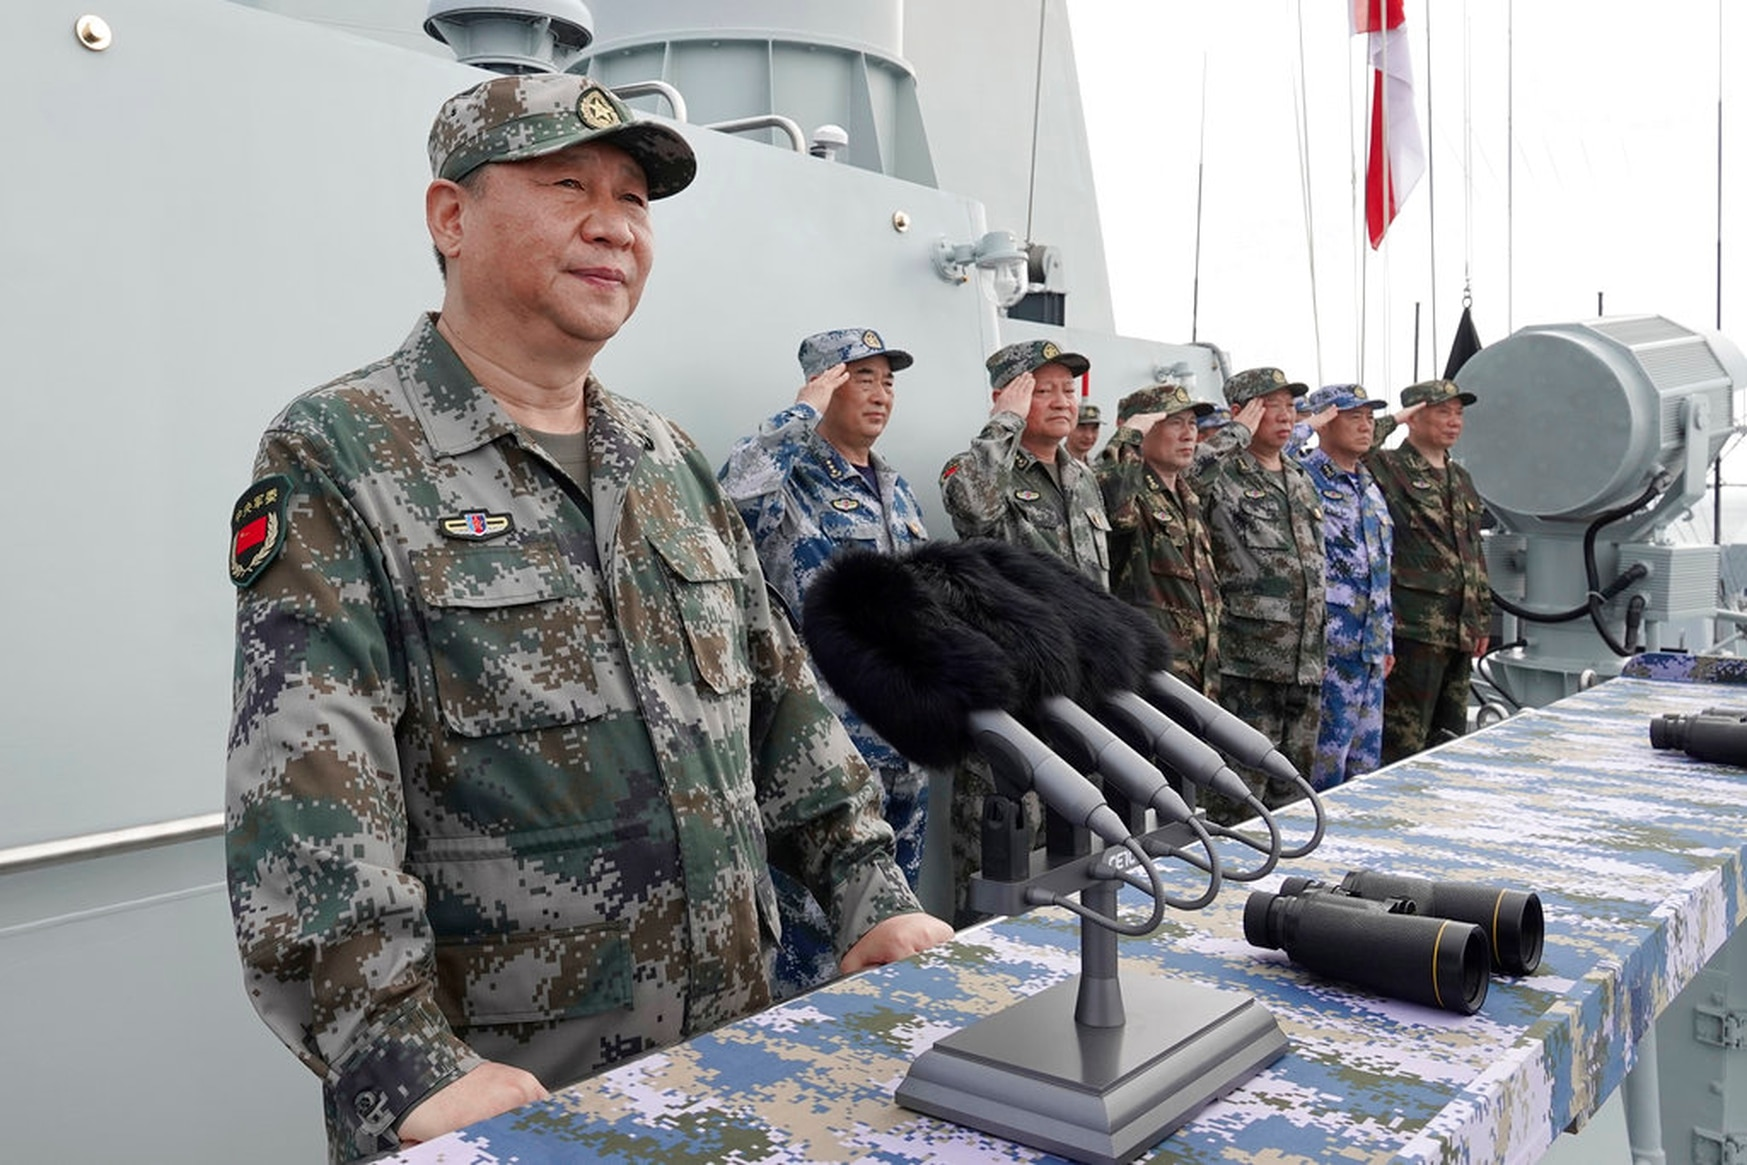 Chinese President Xi Jinping speaks after reviewing the Chinese People's Liberation Army Navy fleet in the South China Sea on April 12, 2018. Xi is calling on the PLAN to better prepare for combat amid tensions over Taiwan and the South China Sea. (Li Gang/Xinhua via AP)